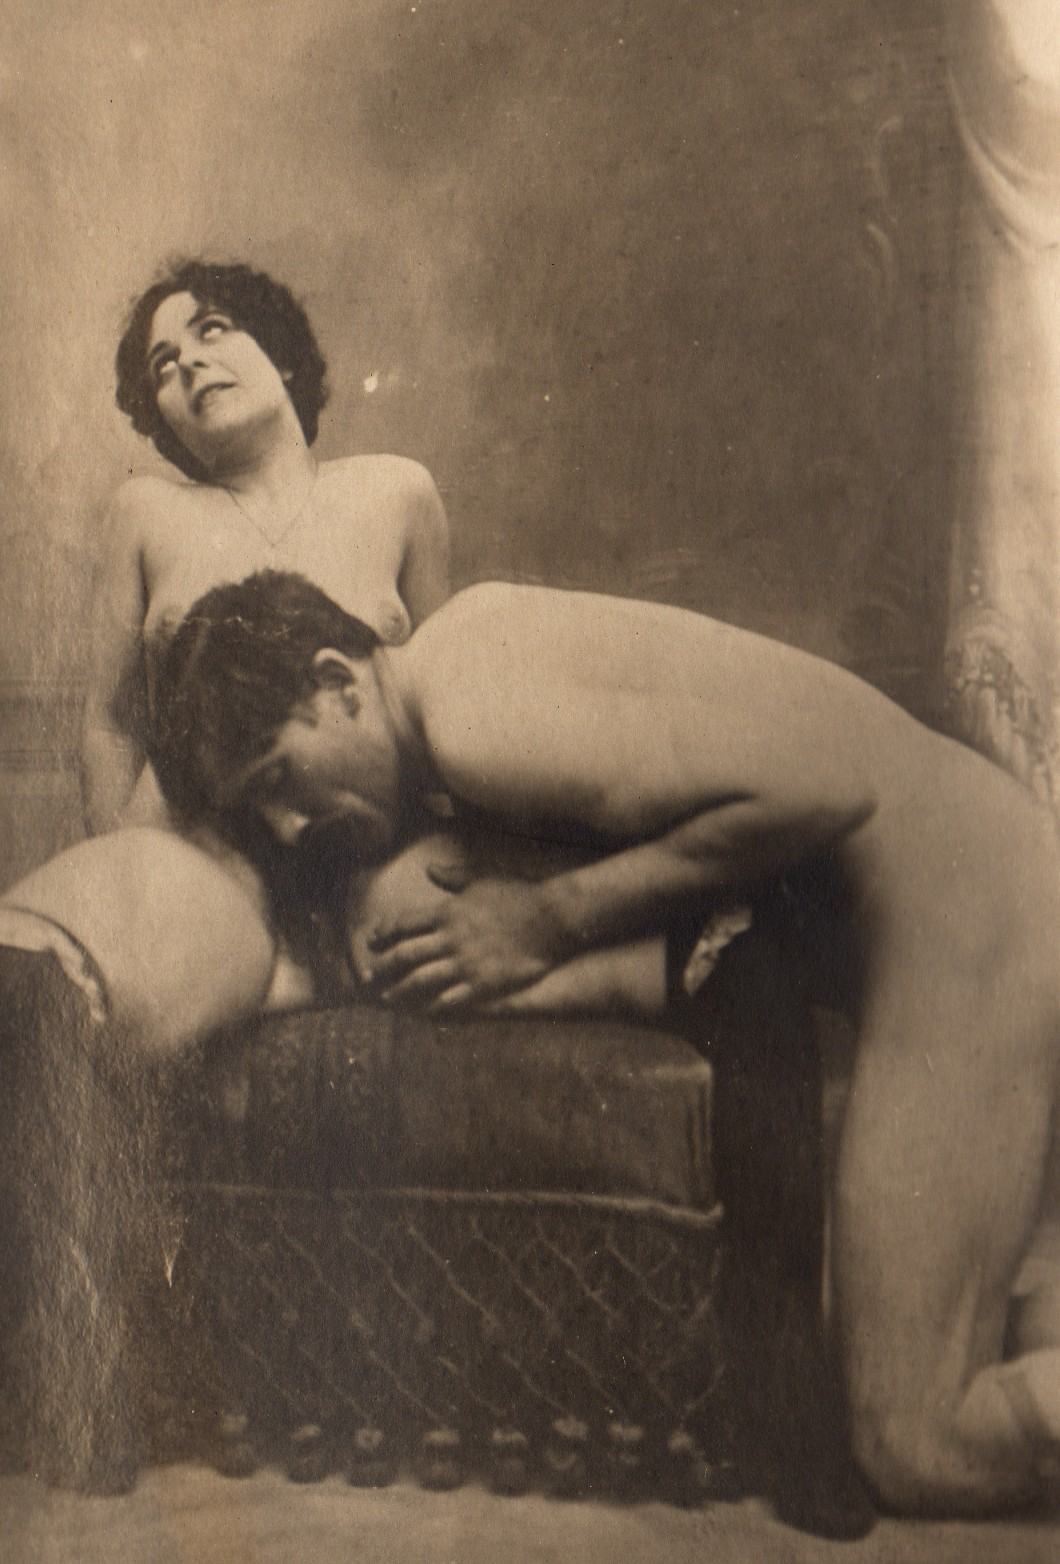 Best of 1910 Vintage Porn